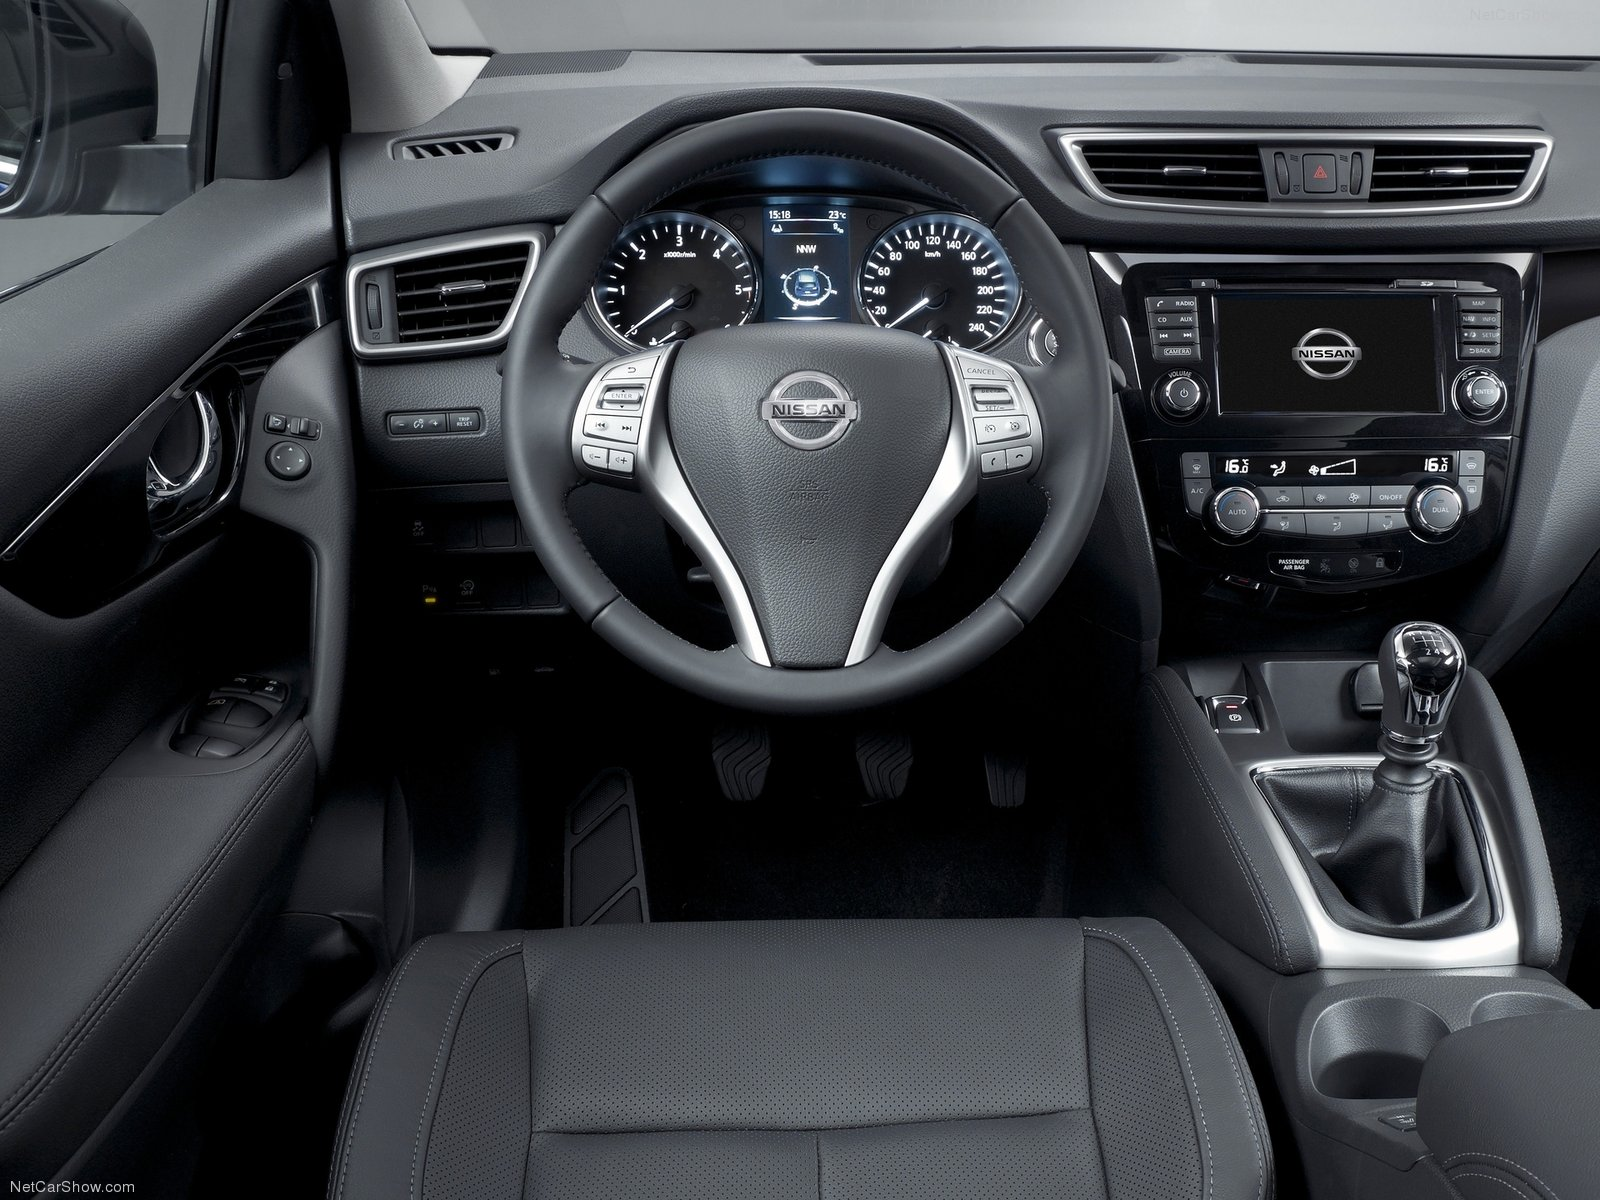 stunning-design-of-the-black-dash-ideas-with-black-steering-wheels-as-the-nissan-qashqai-2014-interior-with-silver-accents